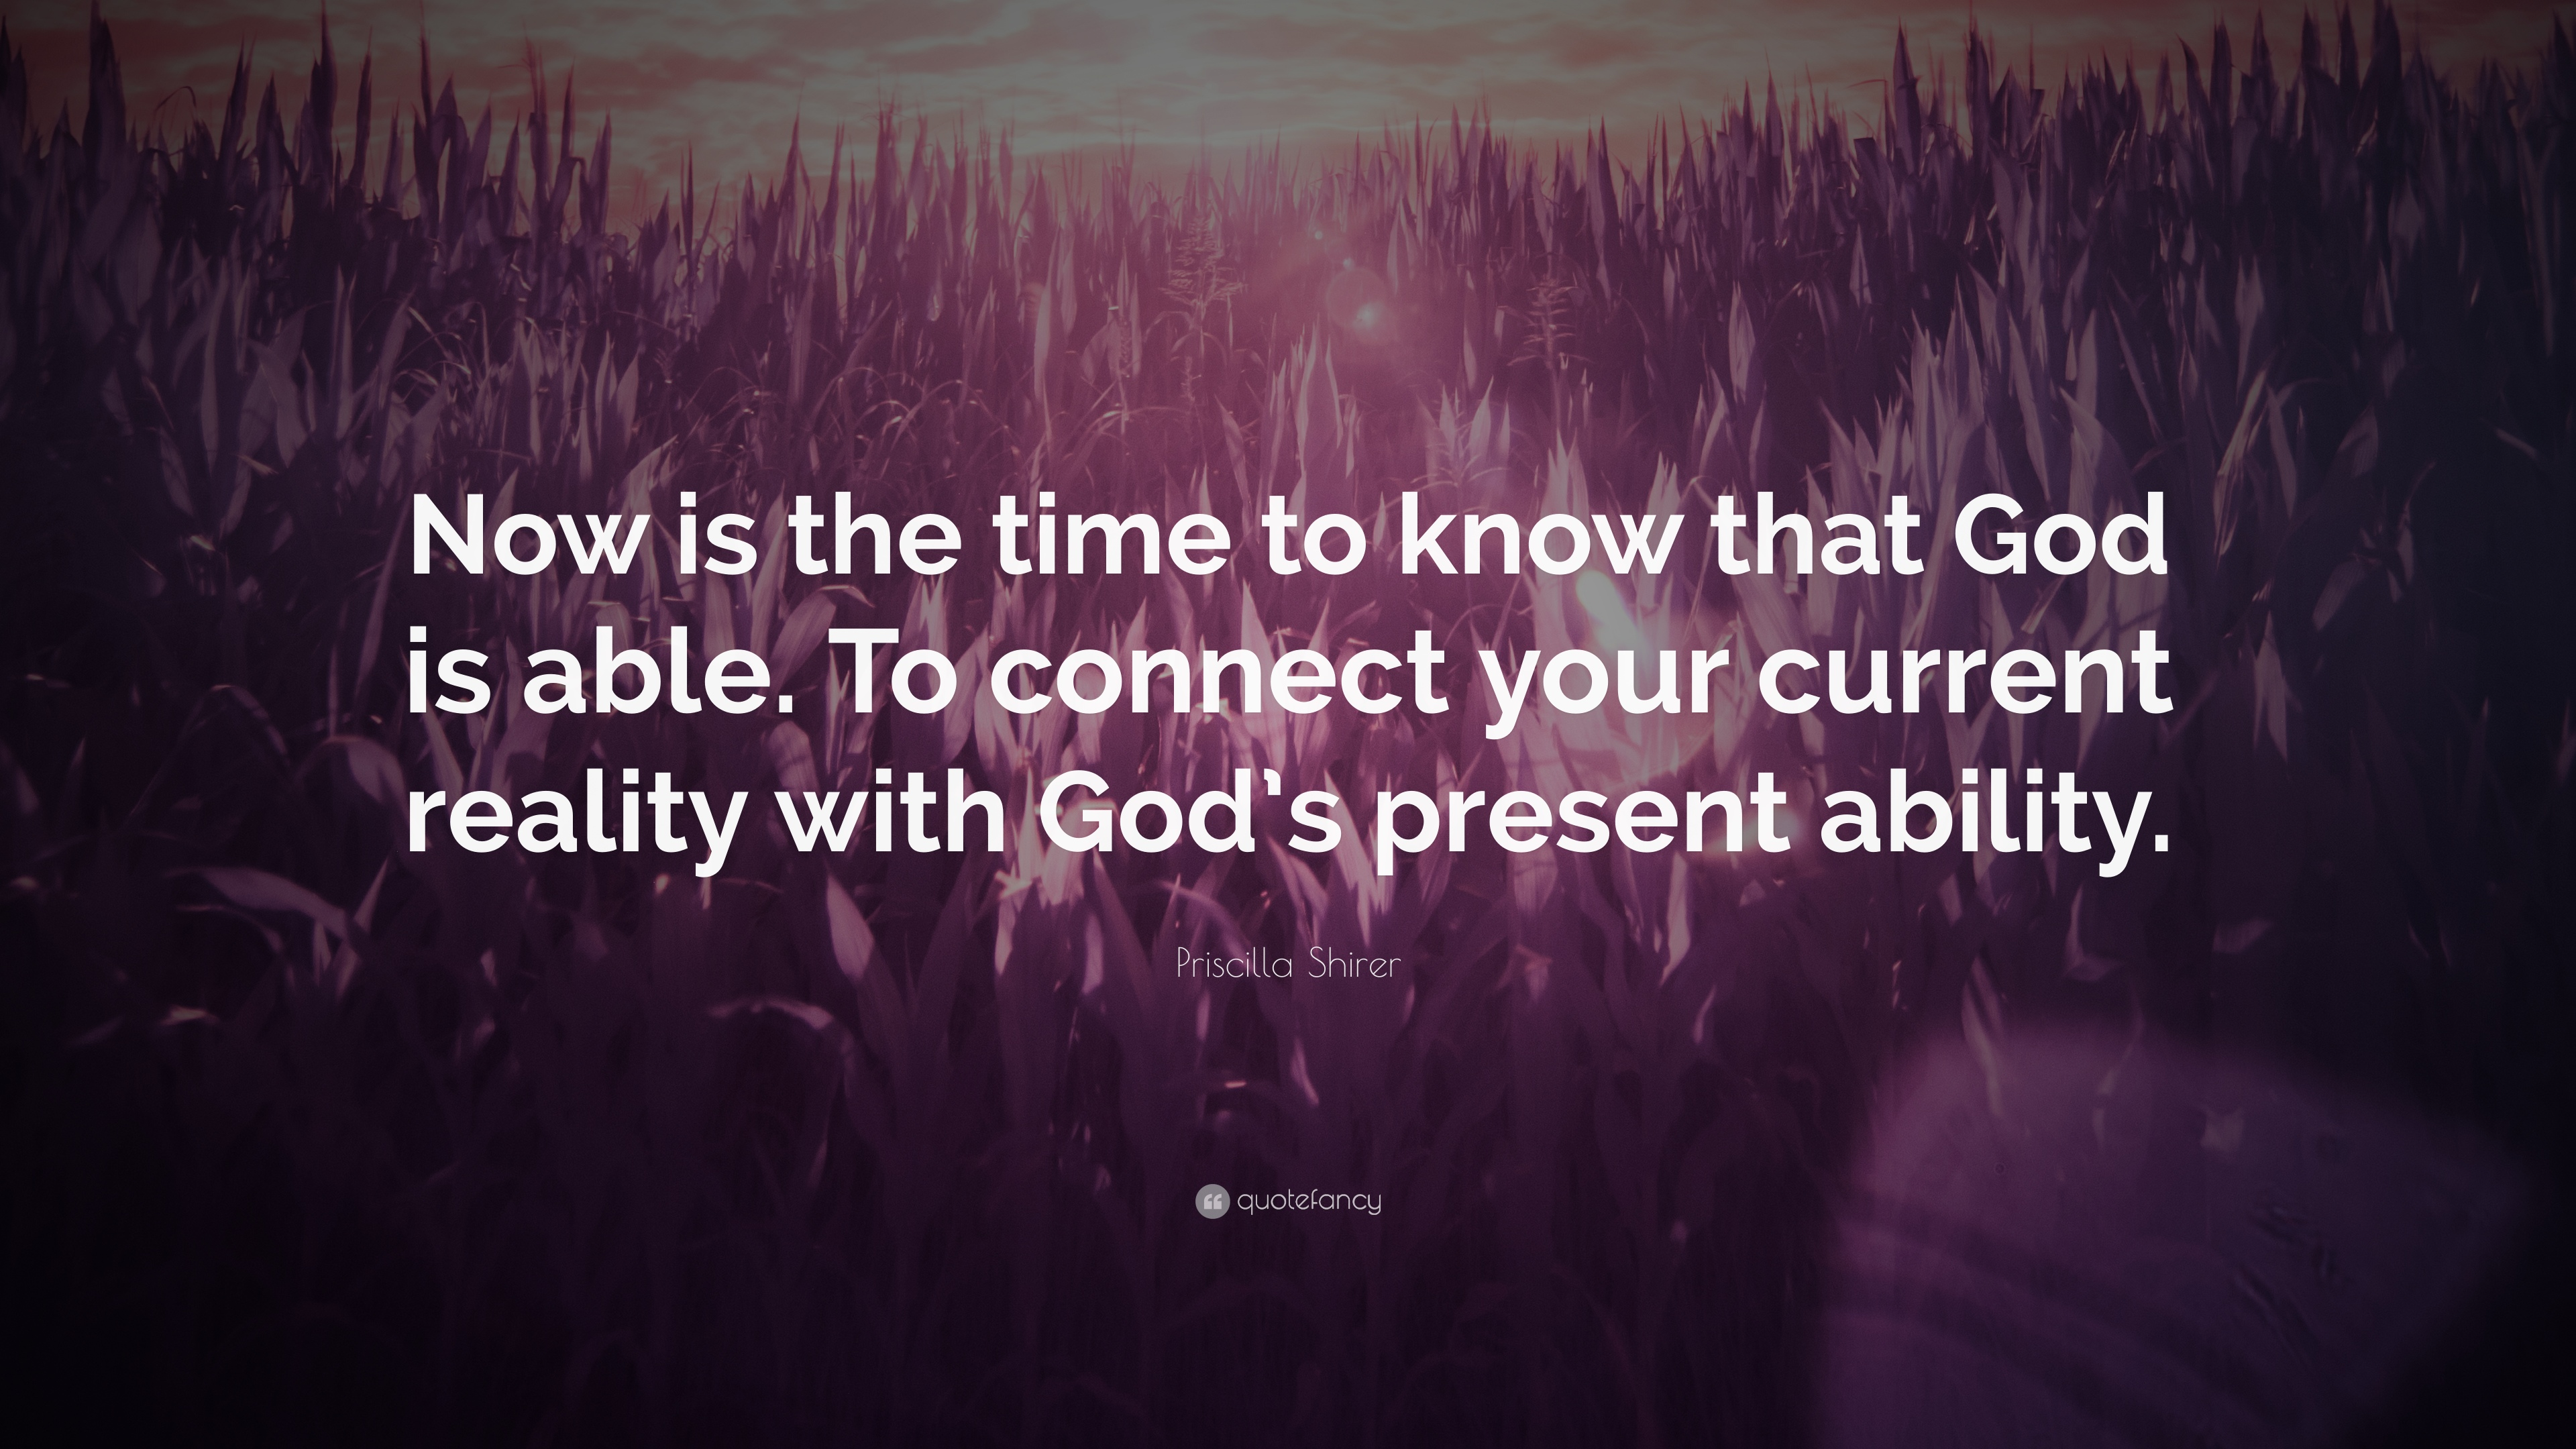 Priscilla Shirer Quote: U201cNow Is The Time To Know That God Is Able.